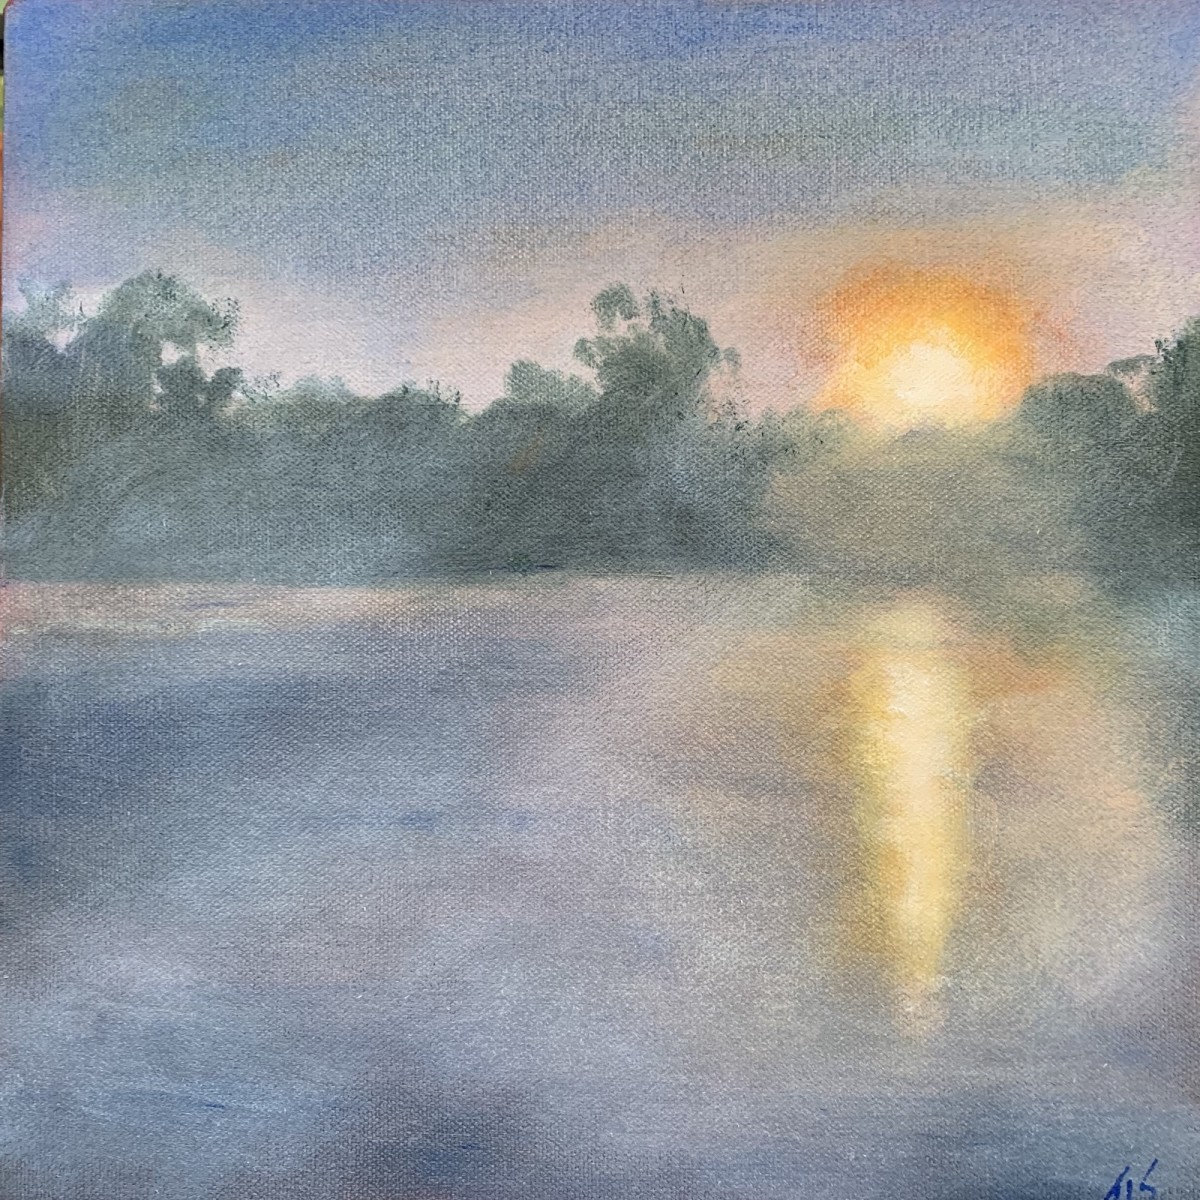 Lake Orange Sunrise~Prayer (36.15434N 79.1493W) by Thomas Stevens